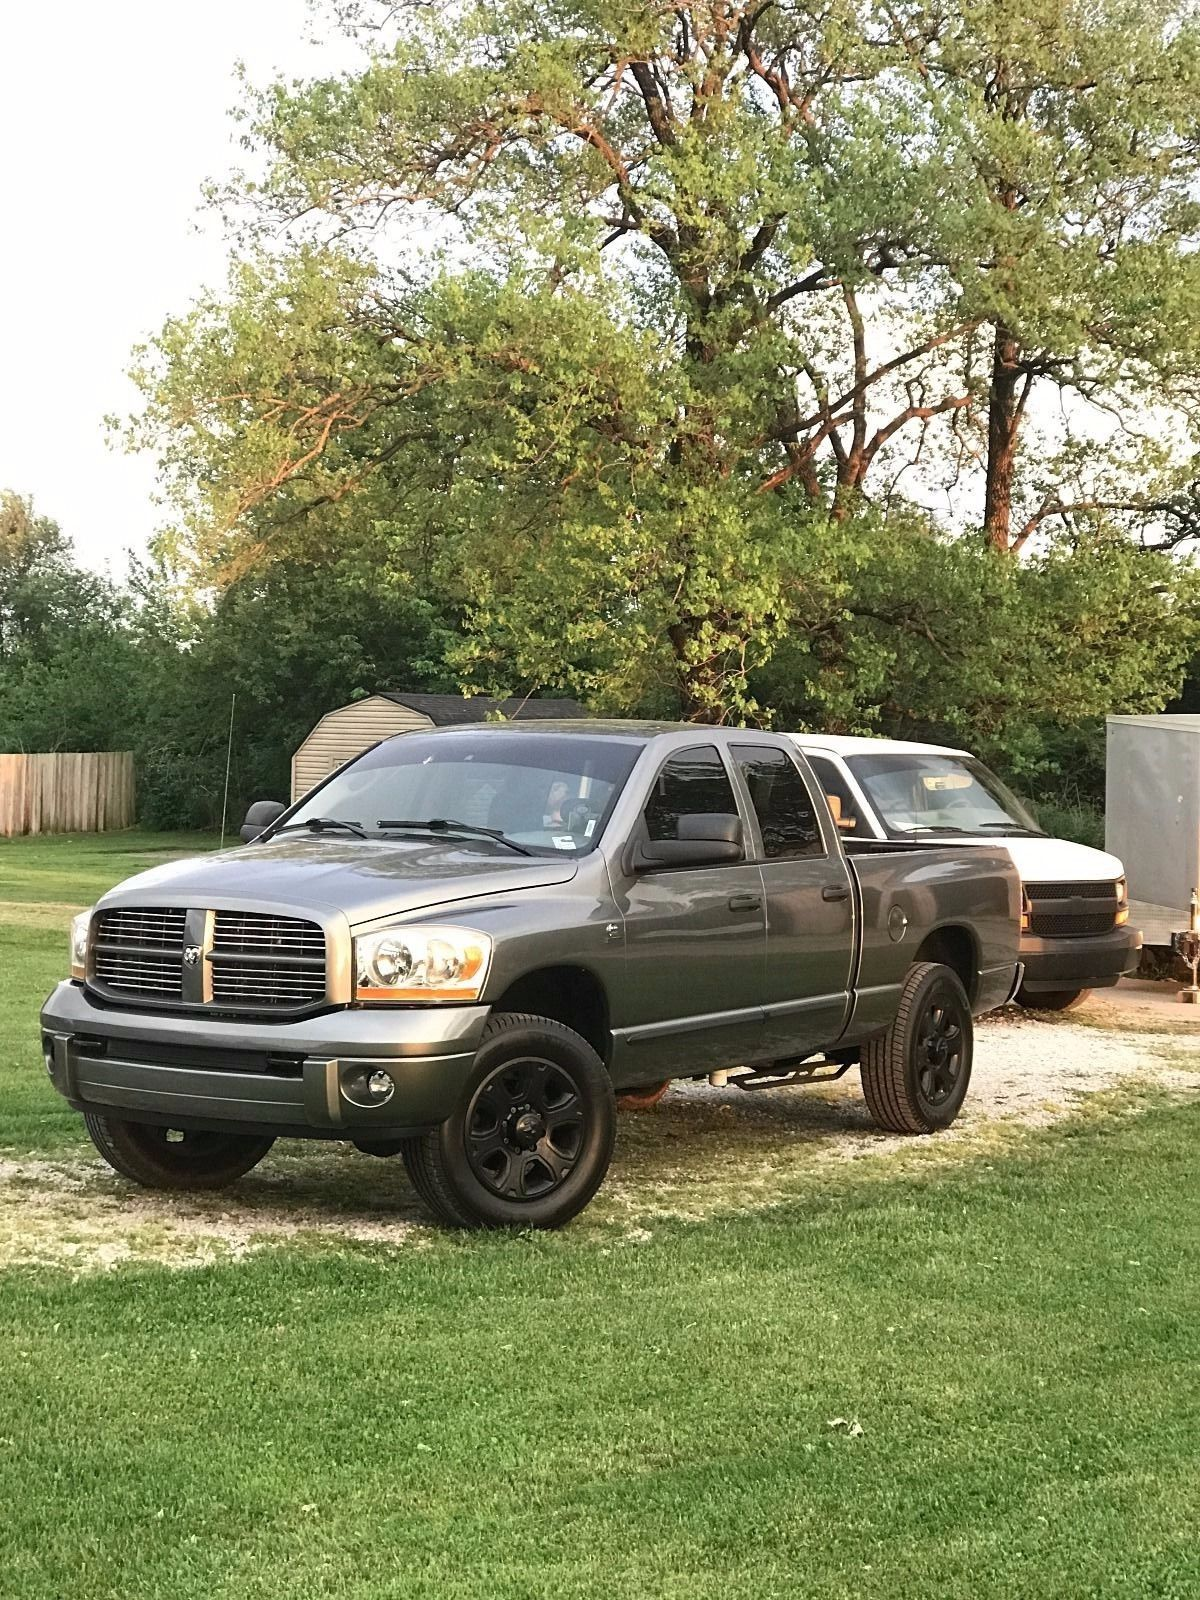 2006 Dodge Charger Rt: Modified 2006 Dodge Ram 2500 SLT BIG HORN Crew Cab For Sale